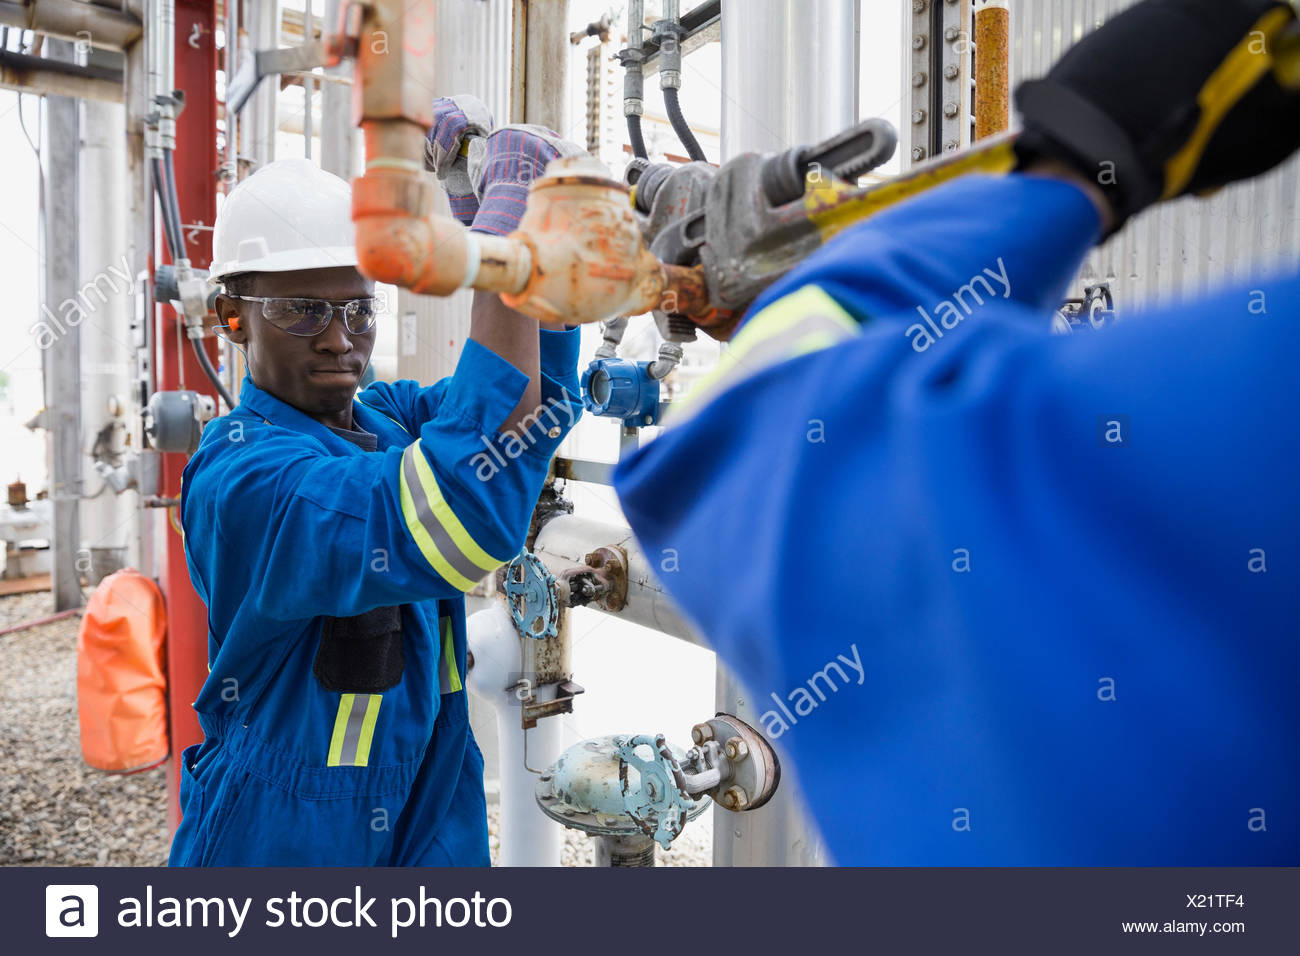 Workers repairing pipe at gas plant - Stock Image